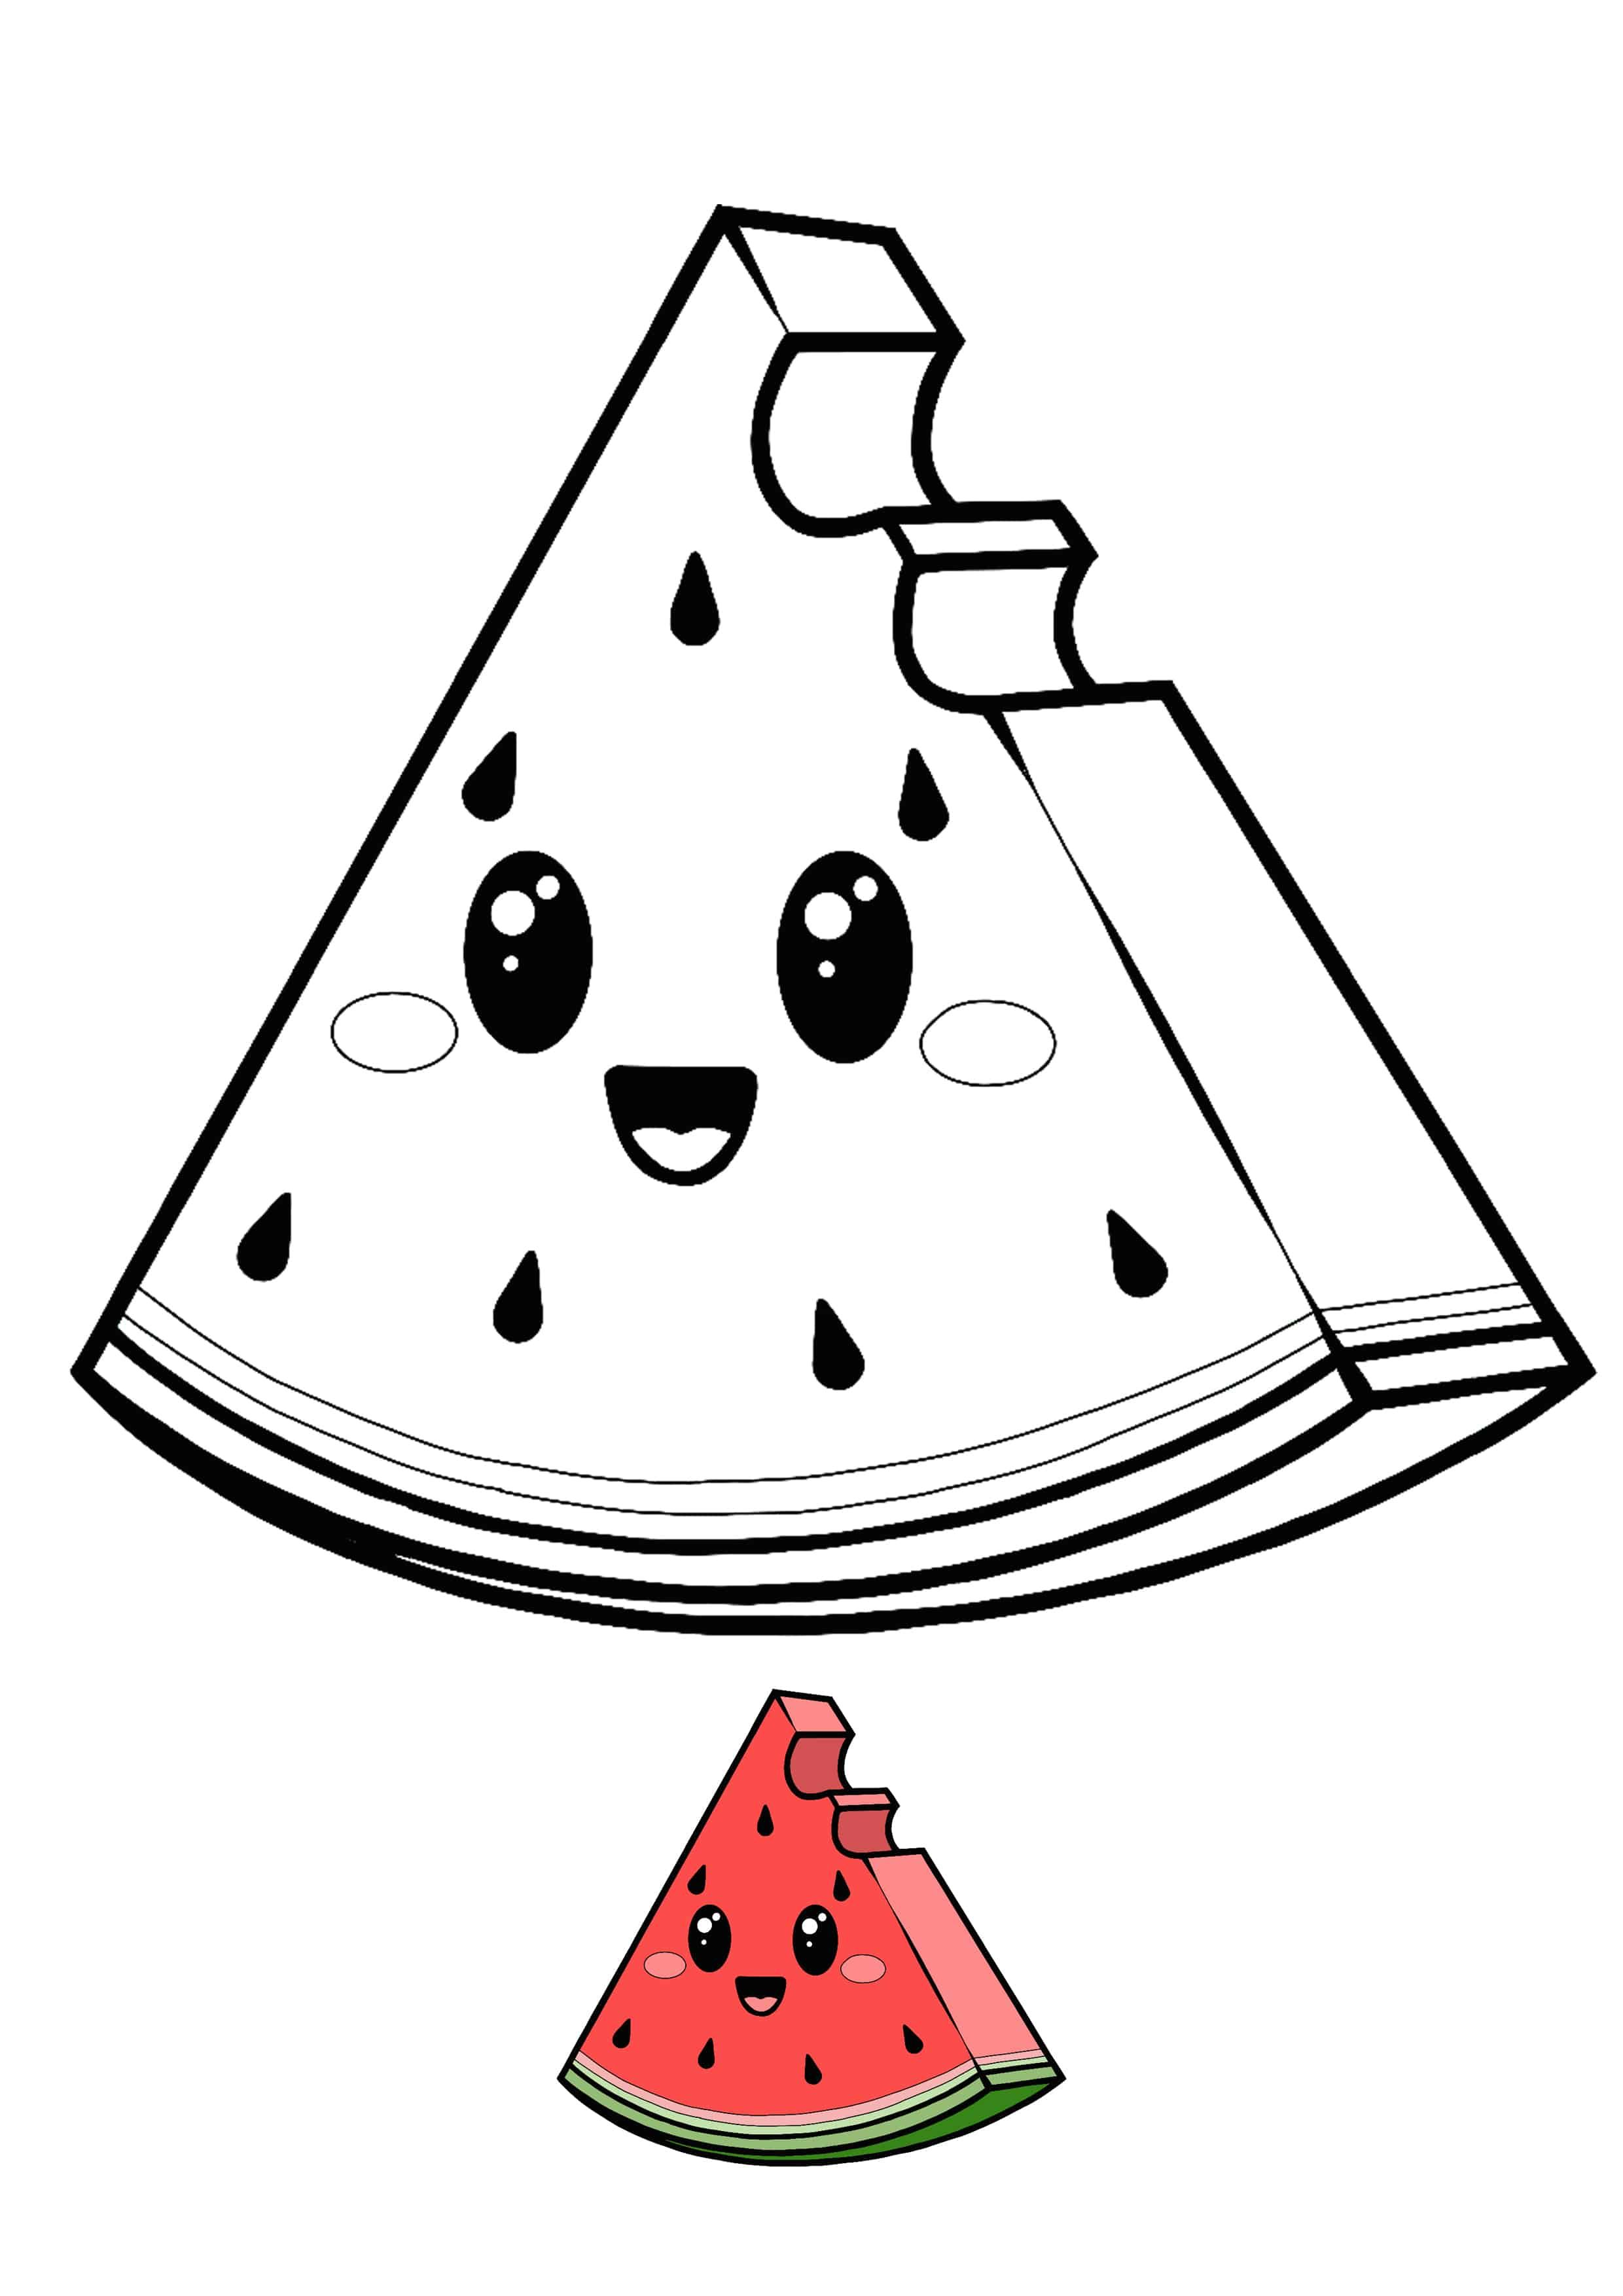 Kawaii Watermelon coloring page for boys and girls  Cute coloring